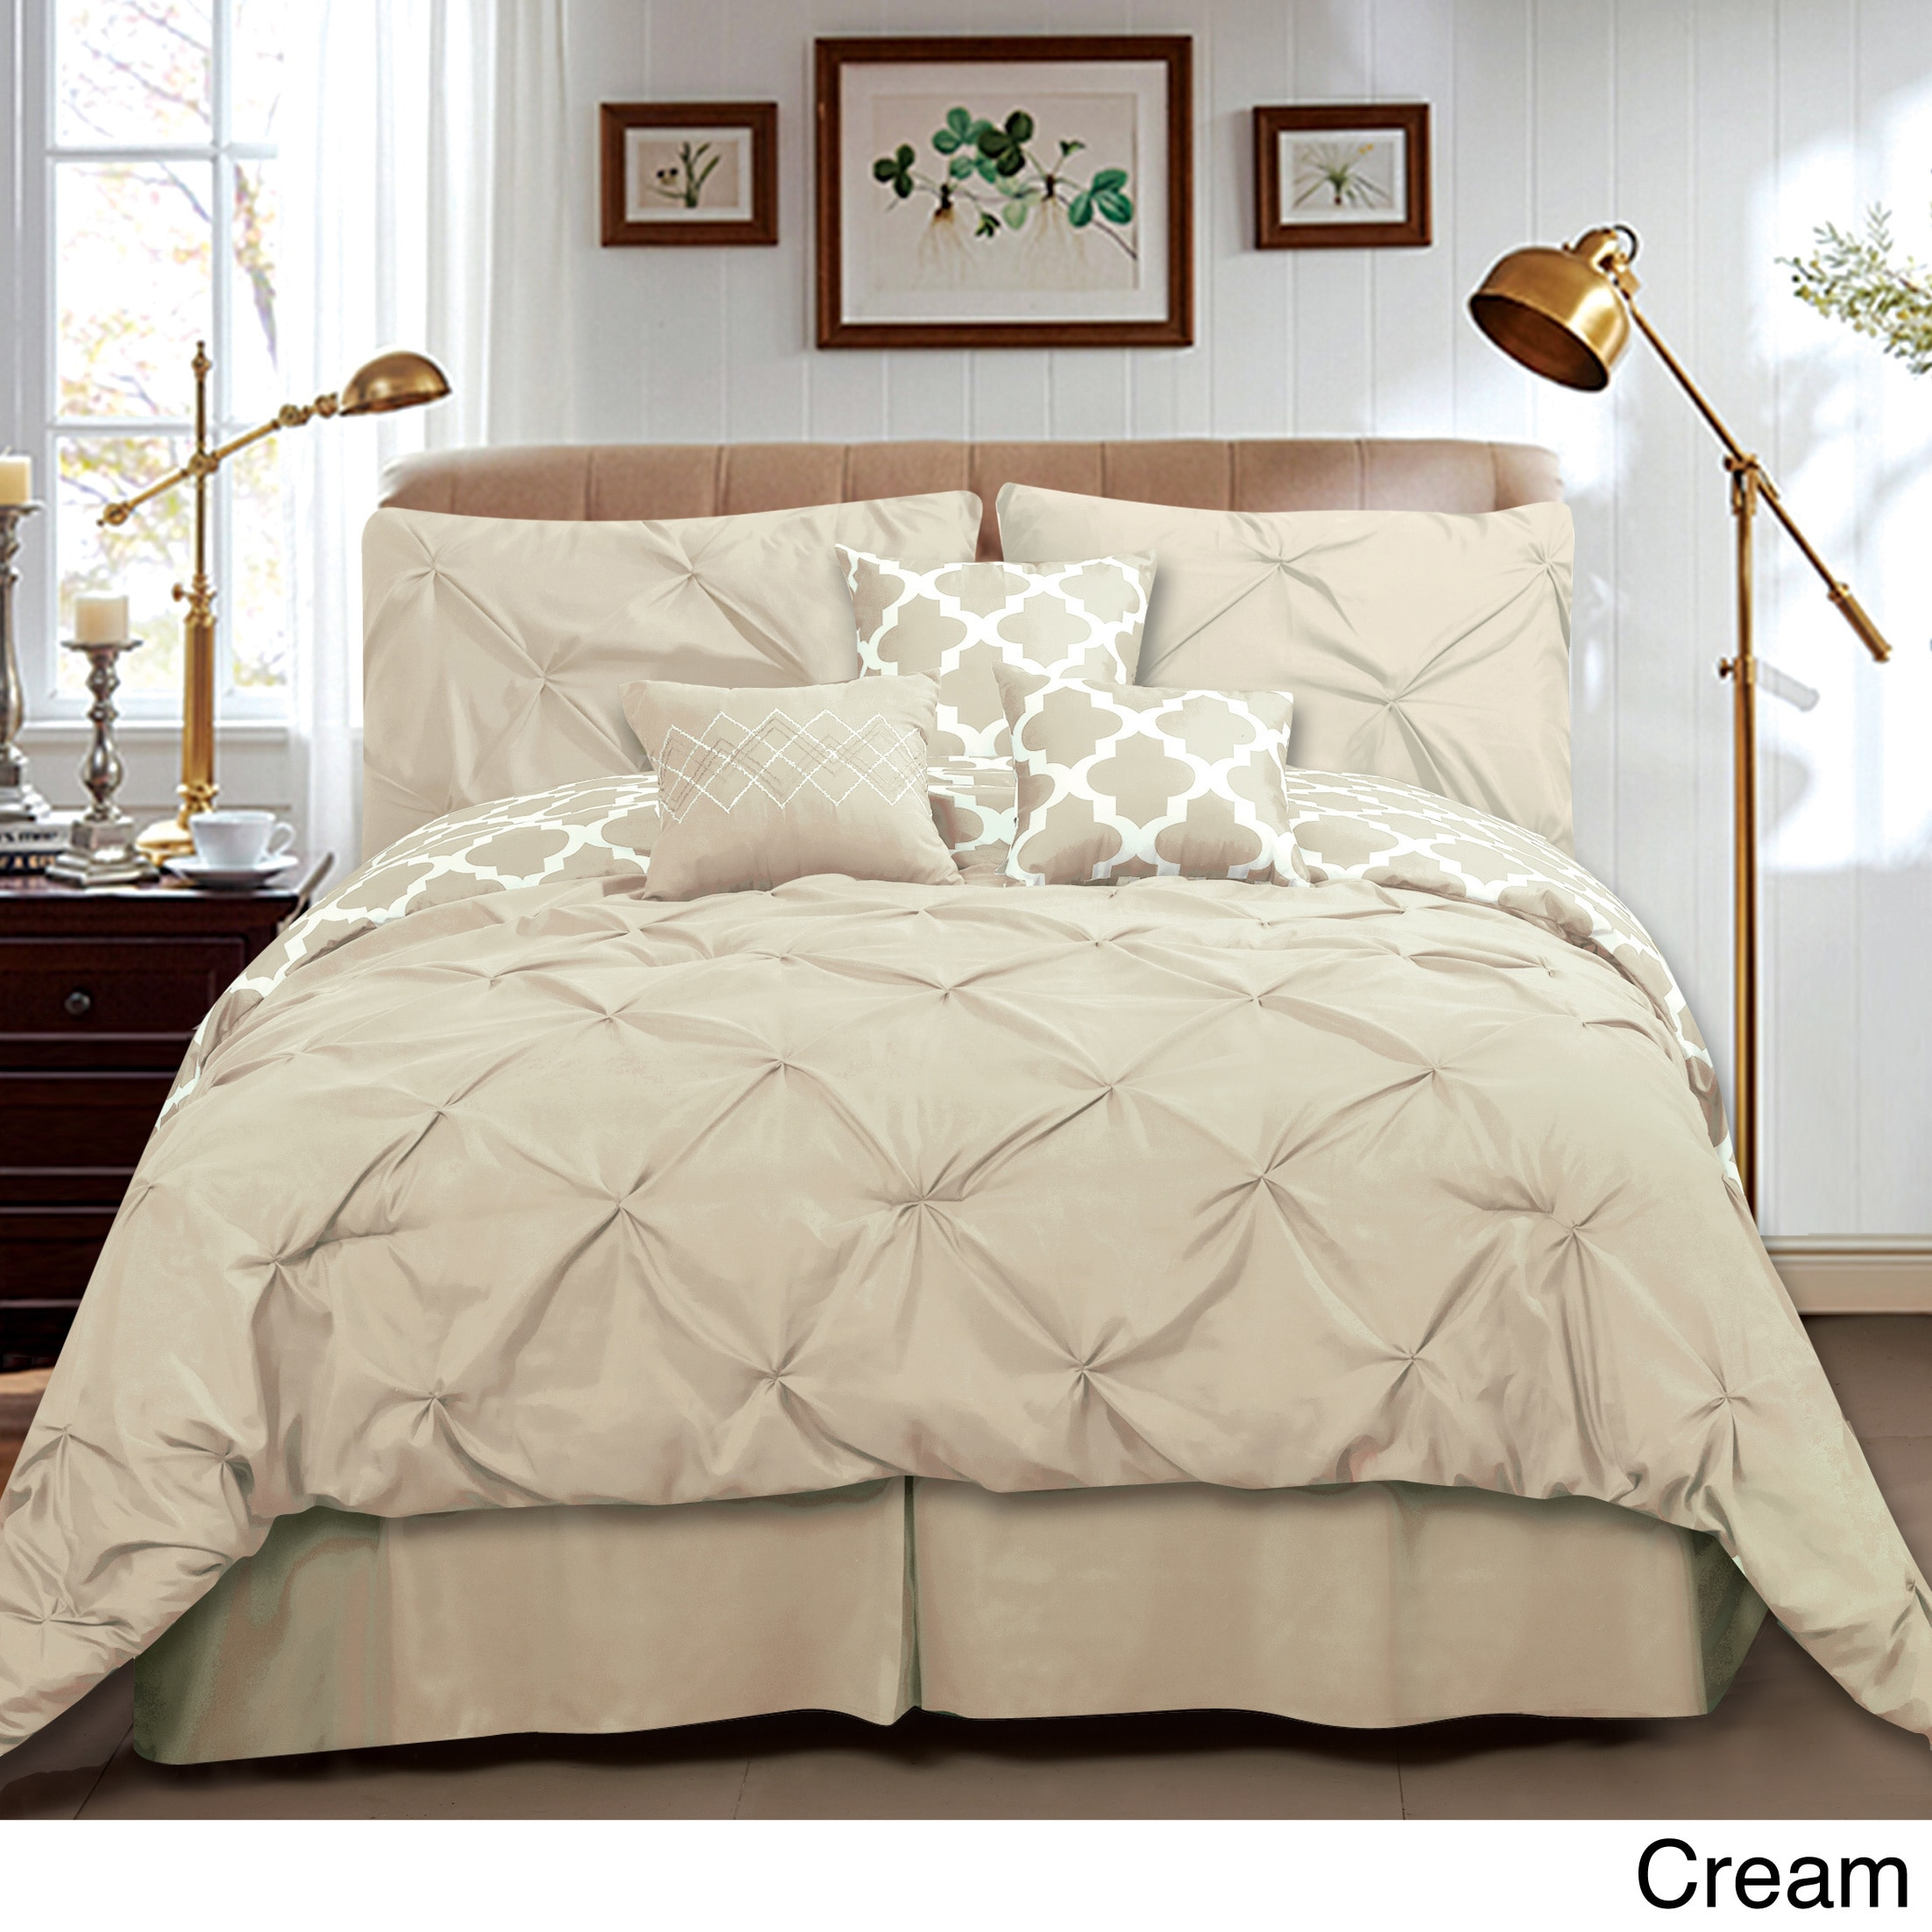 sale queen bedroom set dillards sets gold zi design bedspreads with comforter skirt down gorgeous and next full of duvets exciting comforters blue king cover yellow bedskirt home sheets bedding cream california size luxury dunelm sheet ivory duvet grey canada comfortable white